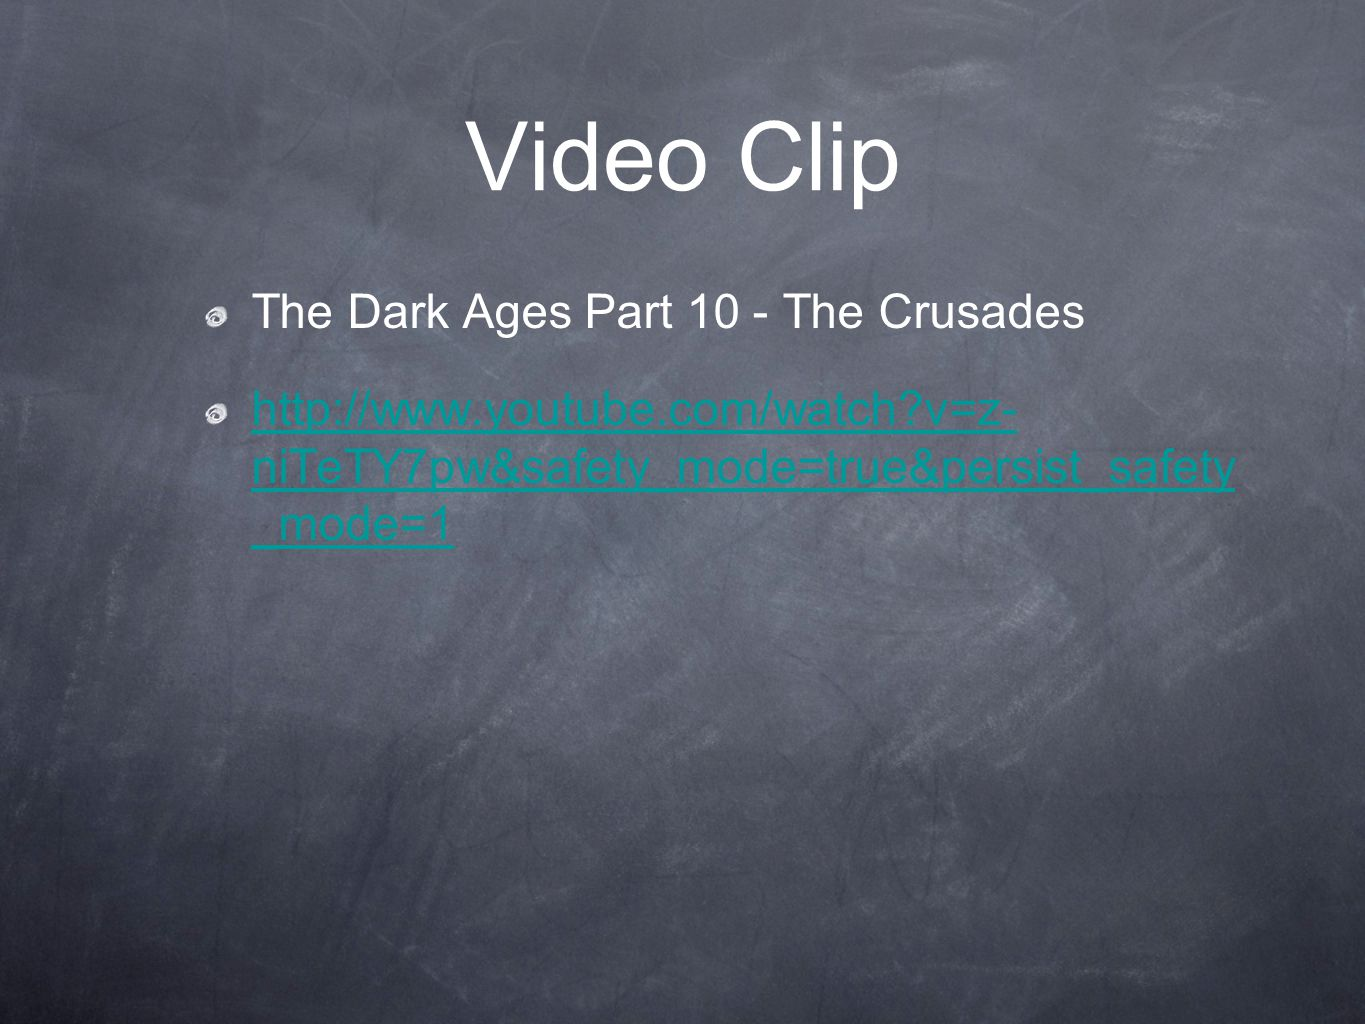 Video Clip The Dark Ages Part 10 - The Crusades